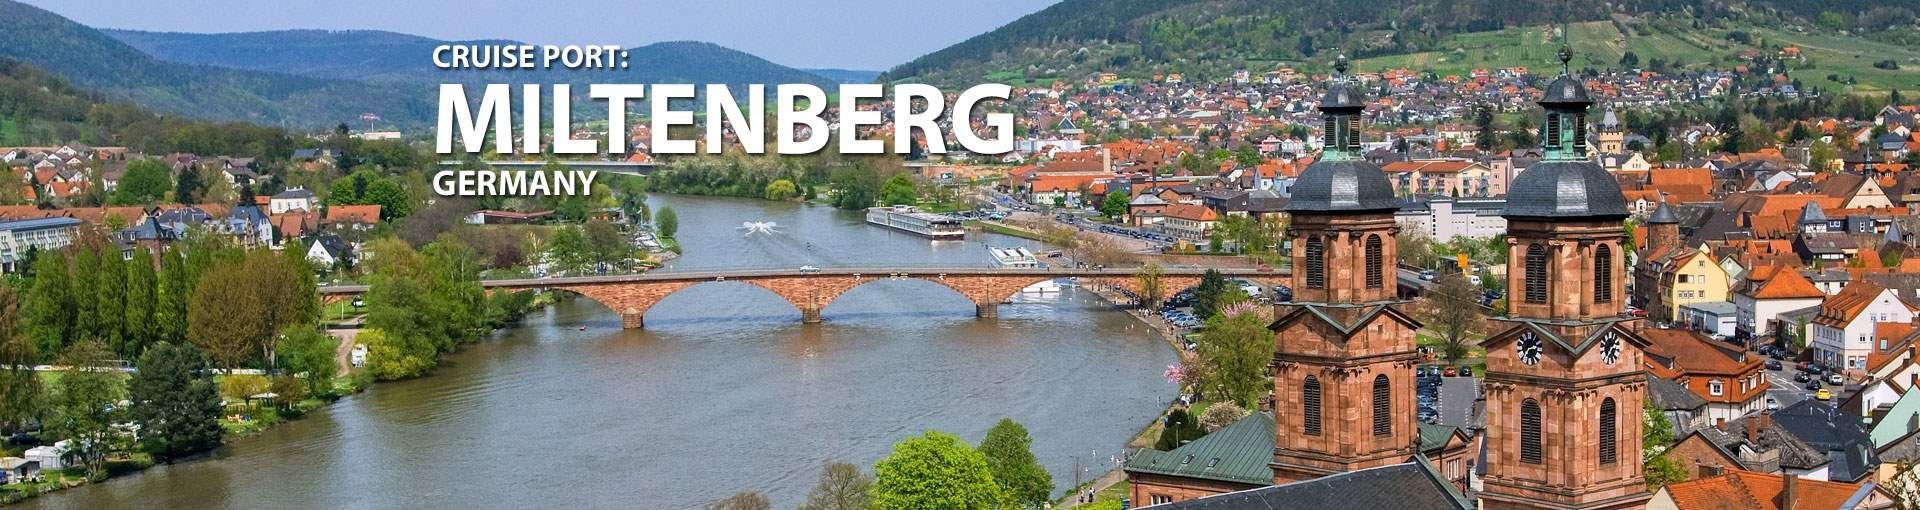 Cruises to Miltenberg, Germany